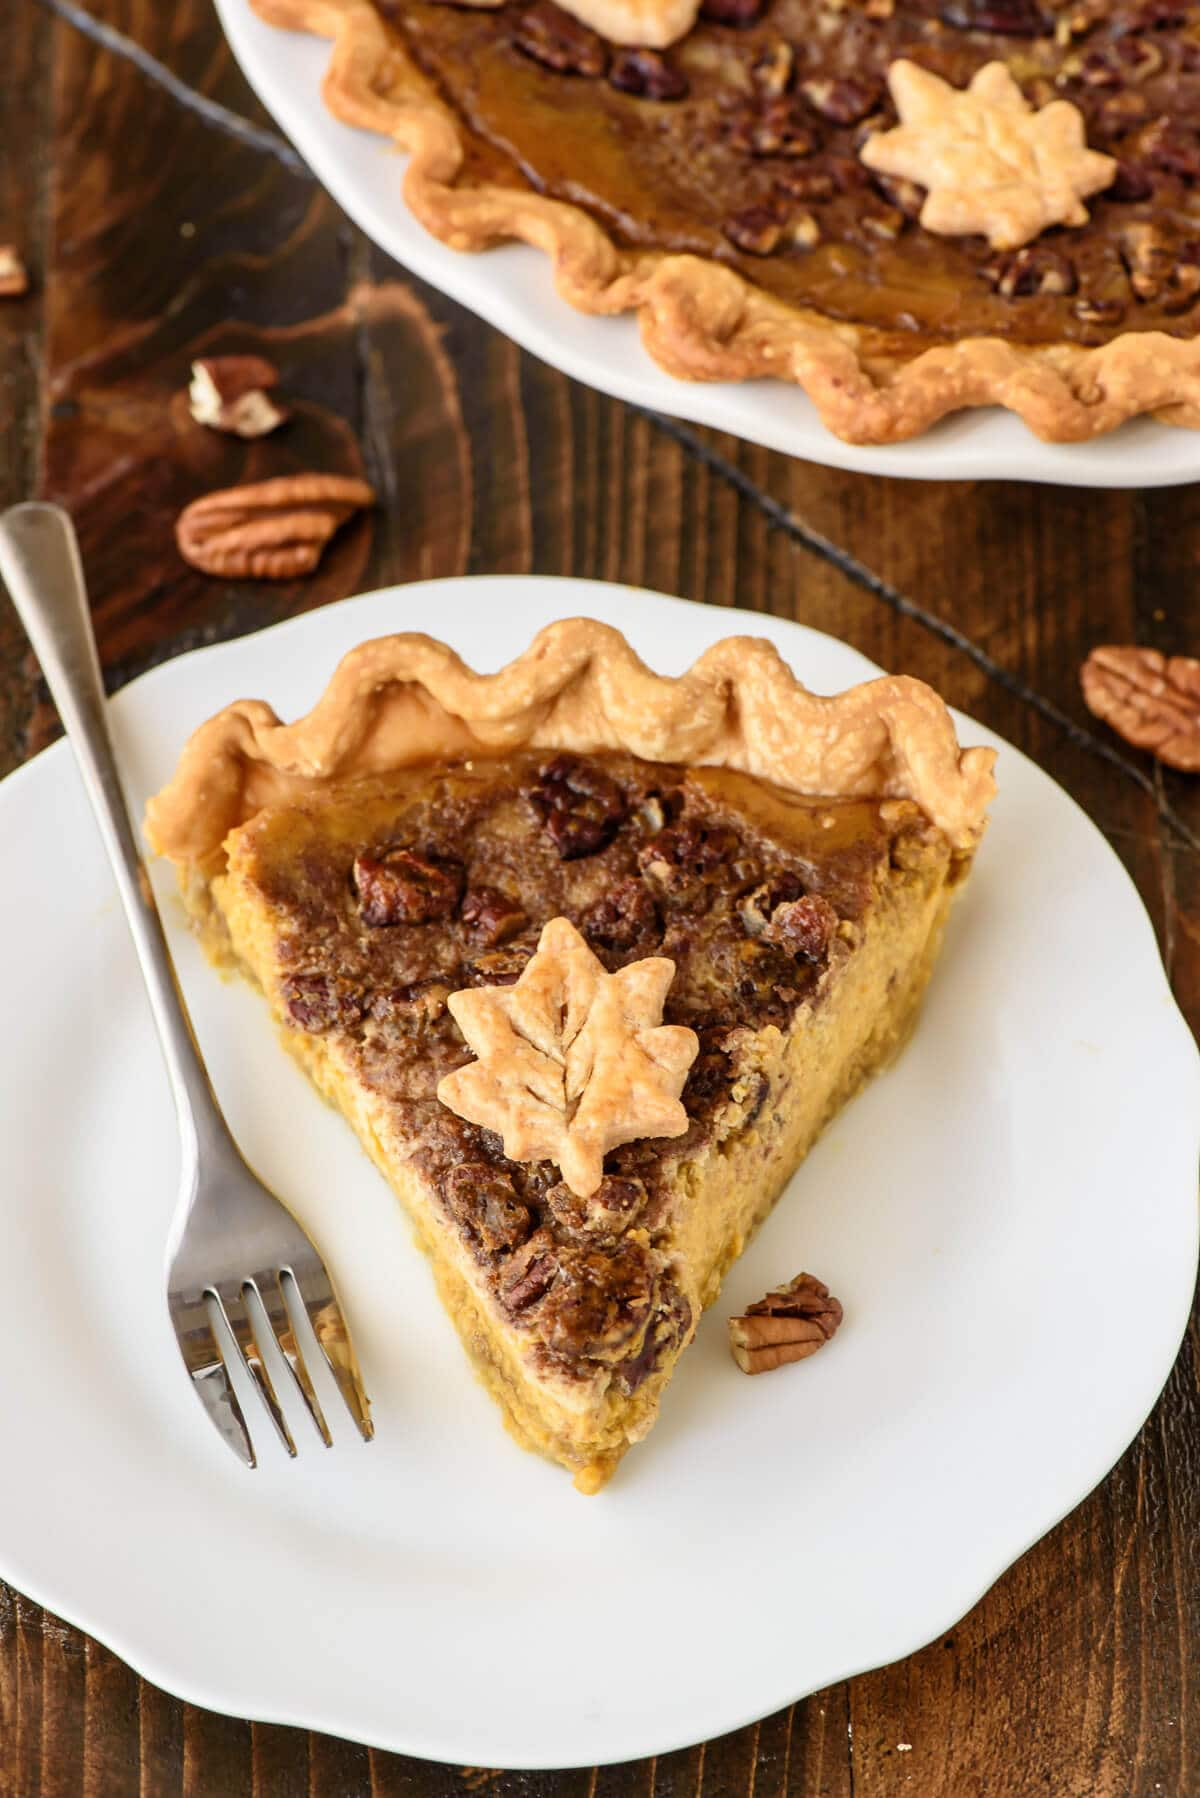 Perfect Pumpkin Pie with Butter Pecan Topping, plus how to bake perfect pumpkin pie that won't crack or burn. A perfect Thanksgiving dessert recipe!